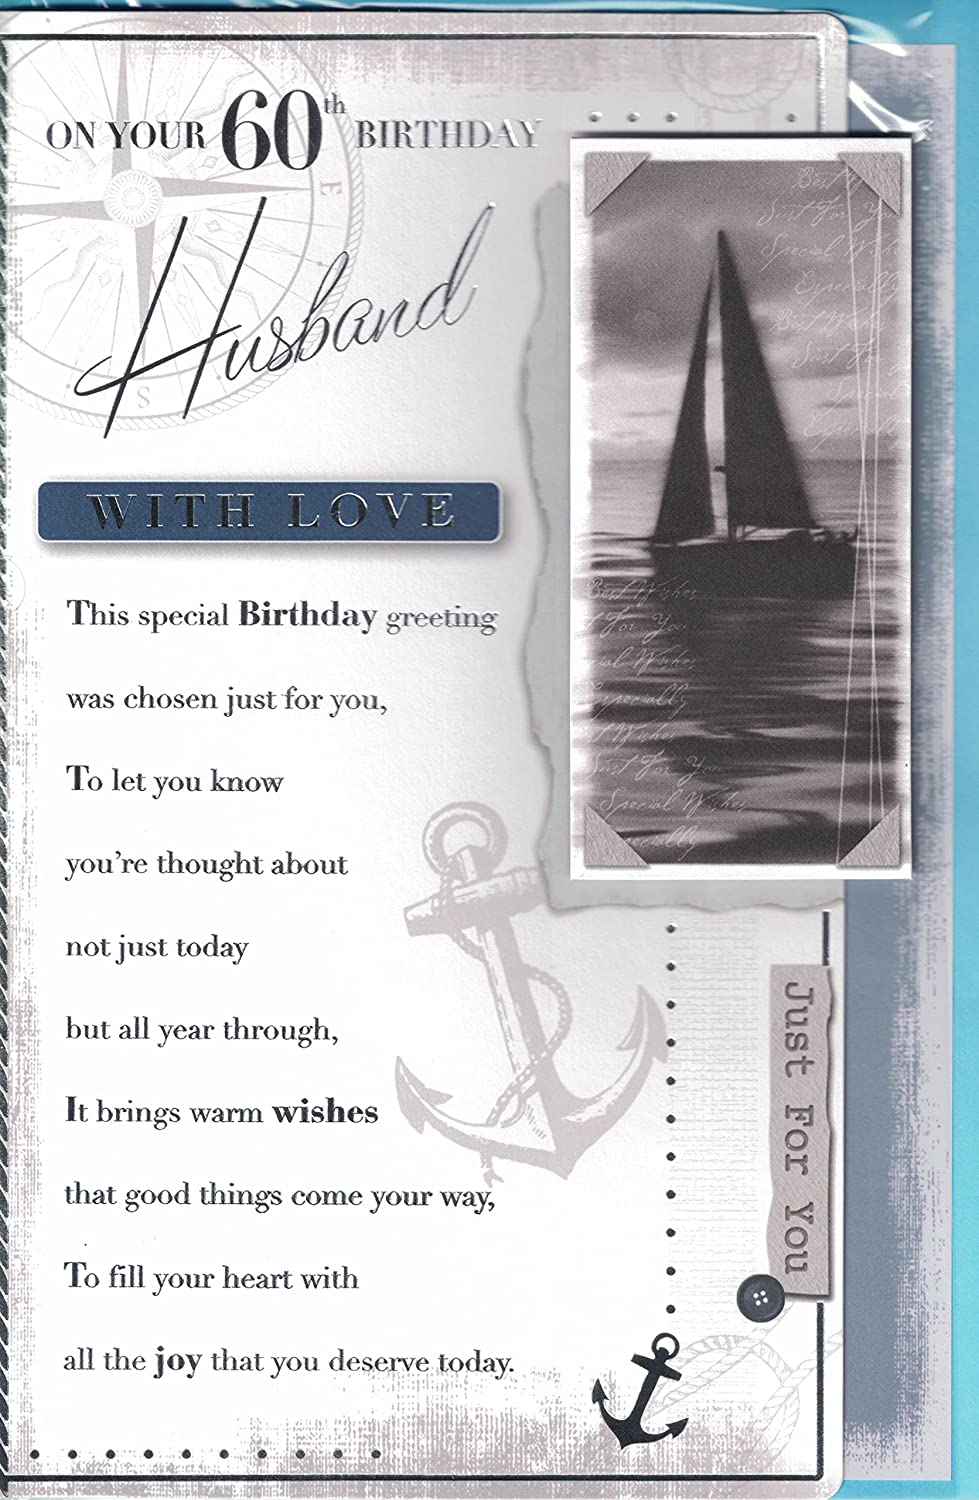 To my darling husband on your 60th birthday card beautiful verse to my darling husband on your 60th birthday card beautiful verse three fold card amazon kitchen home bookmarktalkfo Choice Image